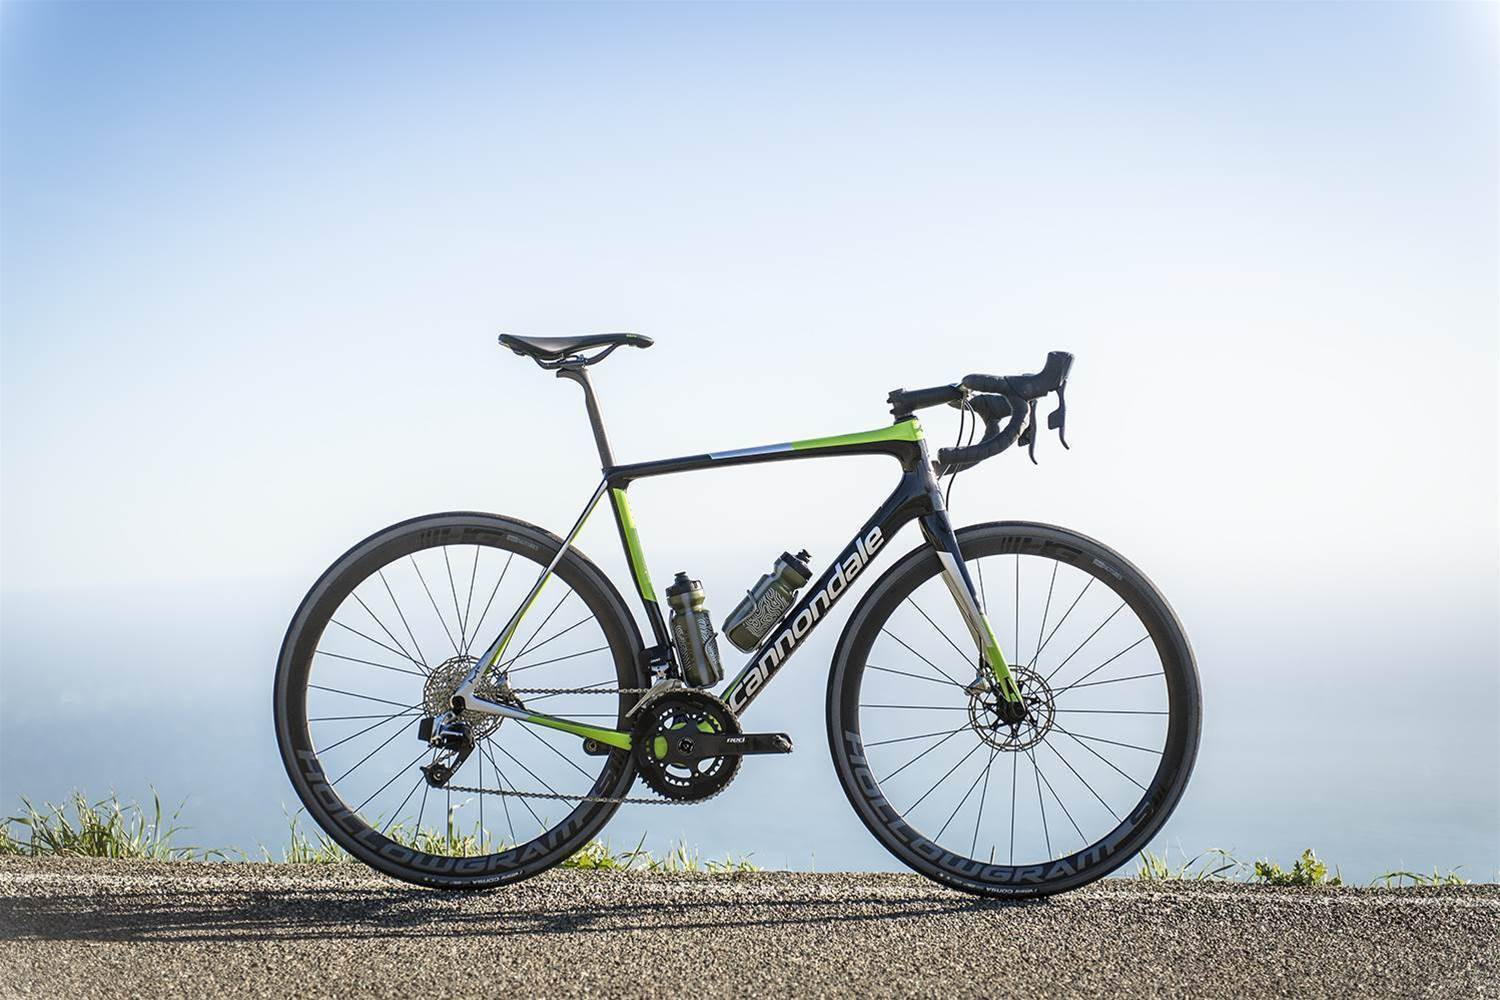 ​Cannondale's Latest Synapse Road Bike Offers More Capability in a High-Performance Package